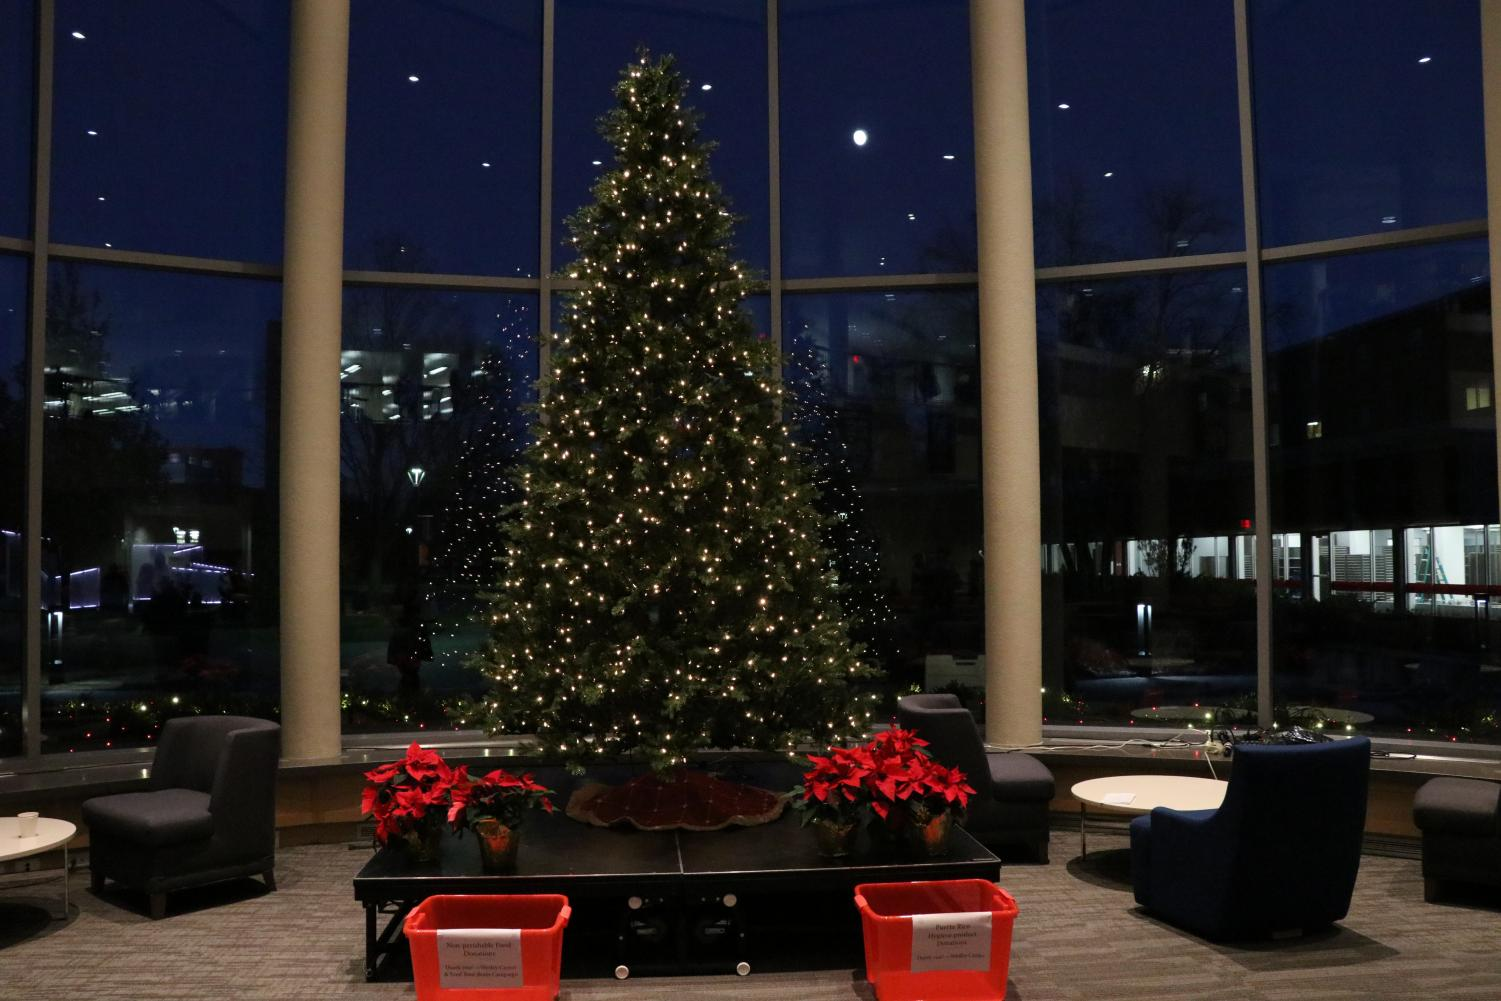 The annual Tree Lighting was held in the Anderson Forum for the first time.